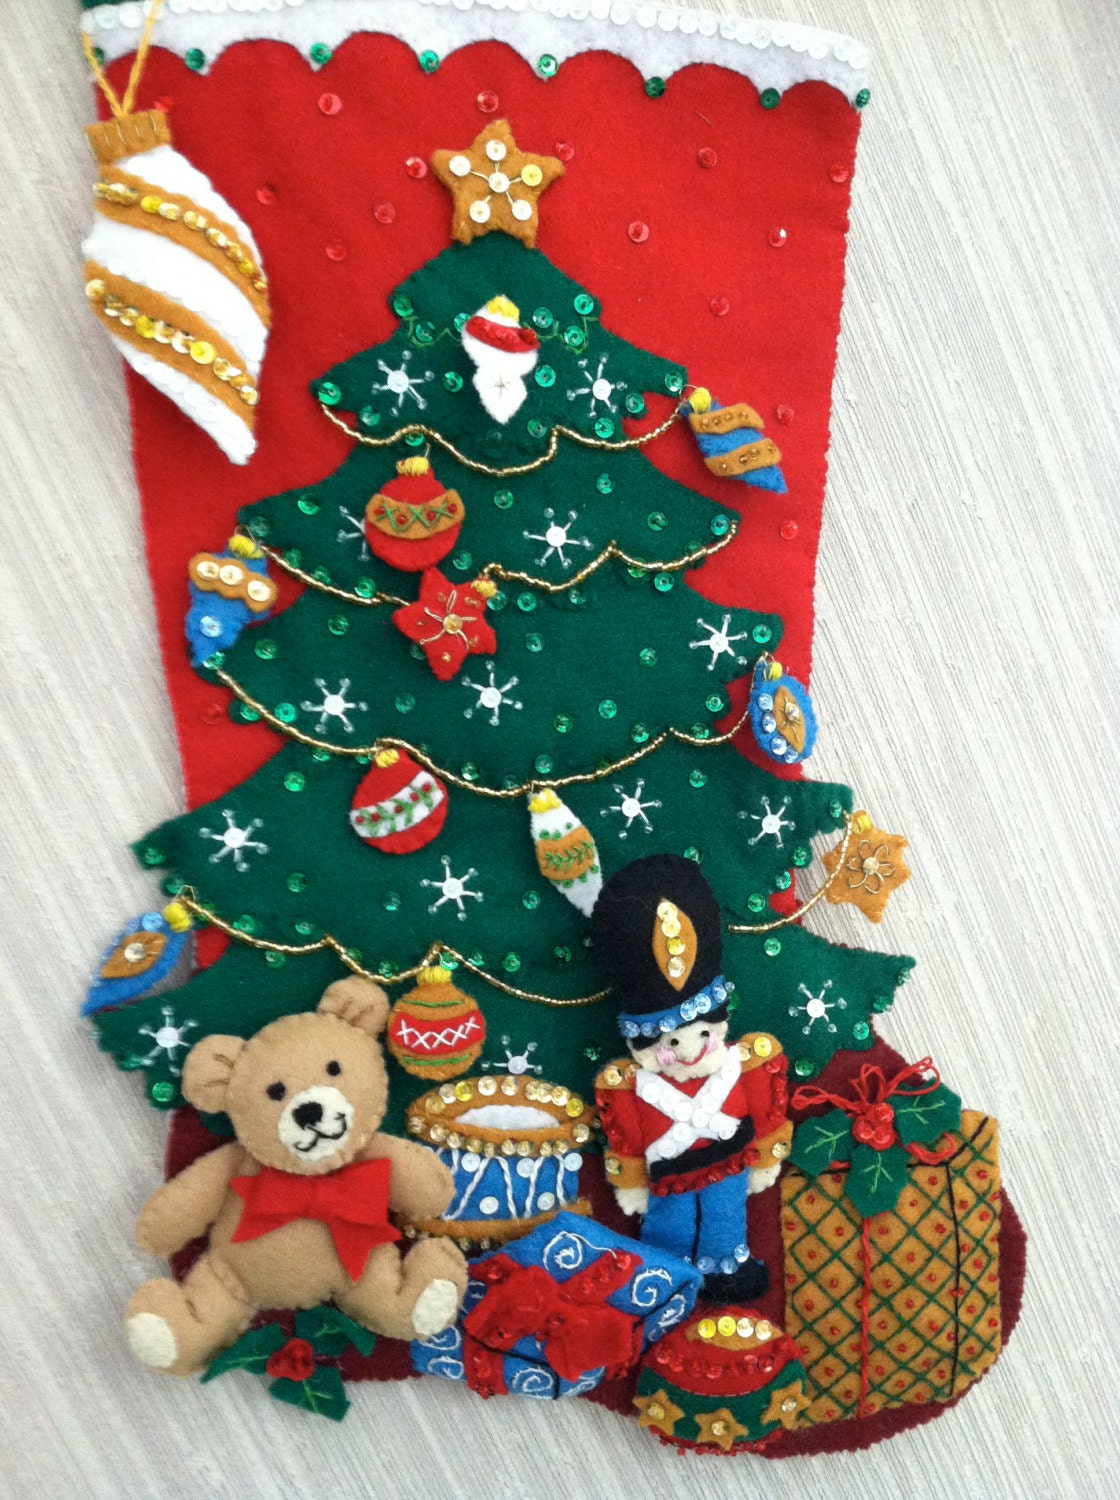 Under The Tree Completed Handmade Felt Christmas Stocking From